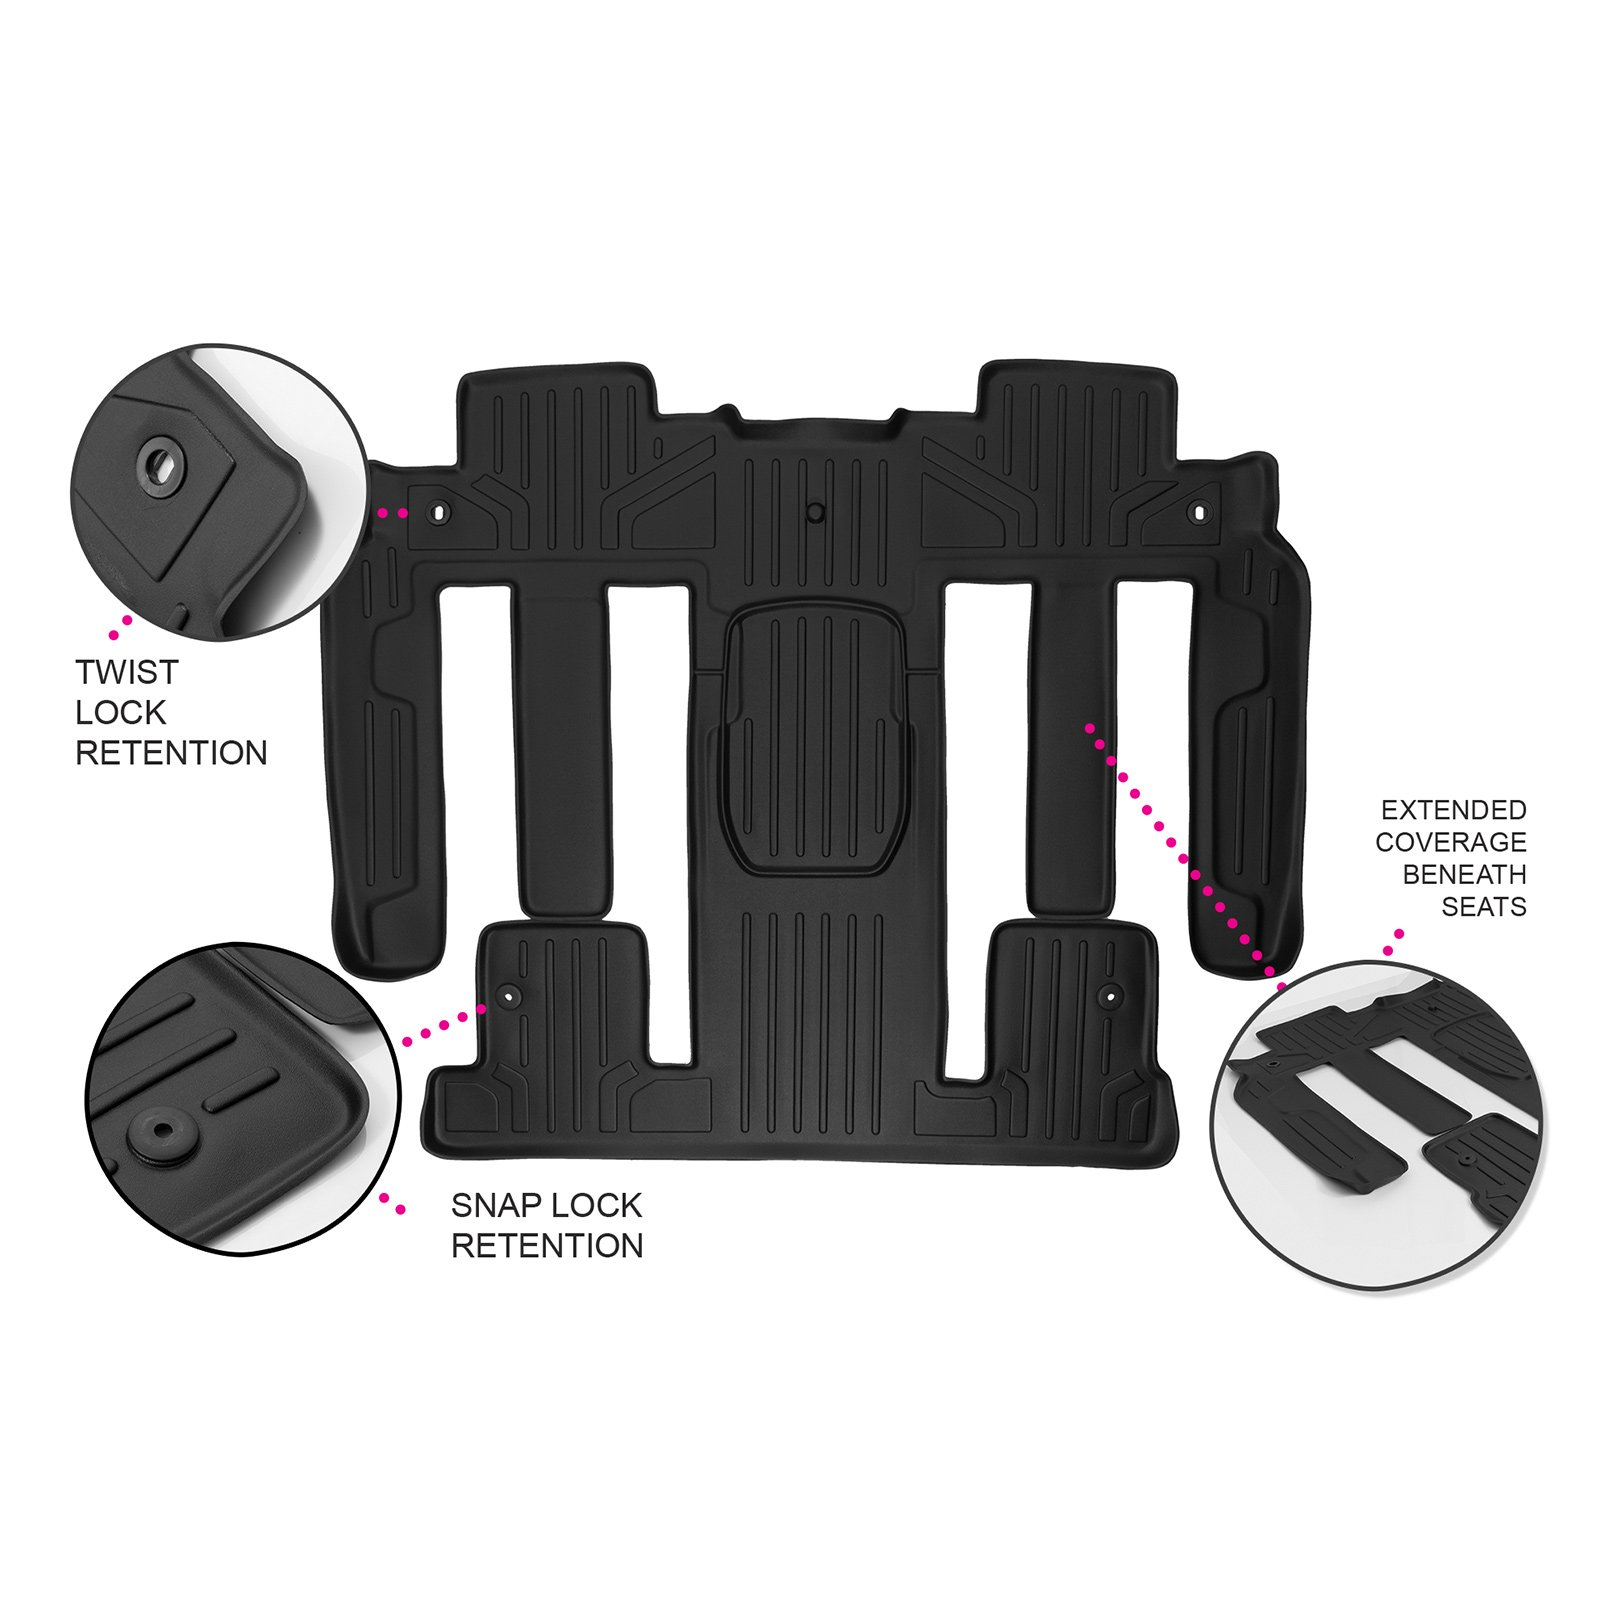 MAXLINER Floor Mats 2nd and 3rd Row Liner Black for Traverse/Enclave / Acadia/Outlook (with 2nd Row Bucket Seats)